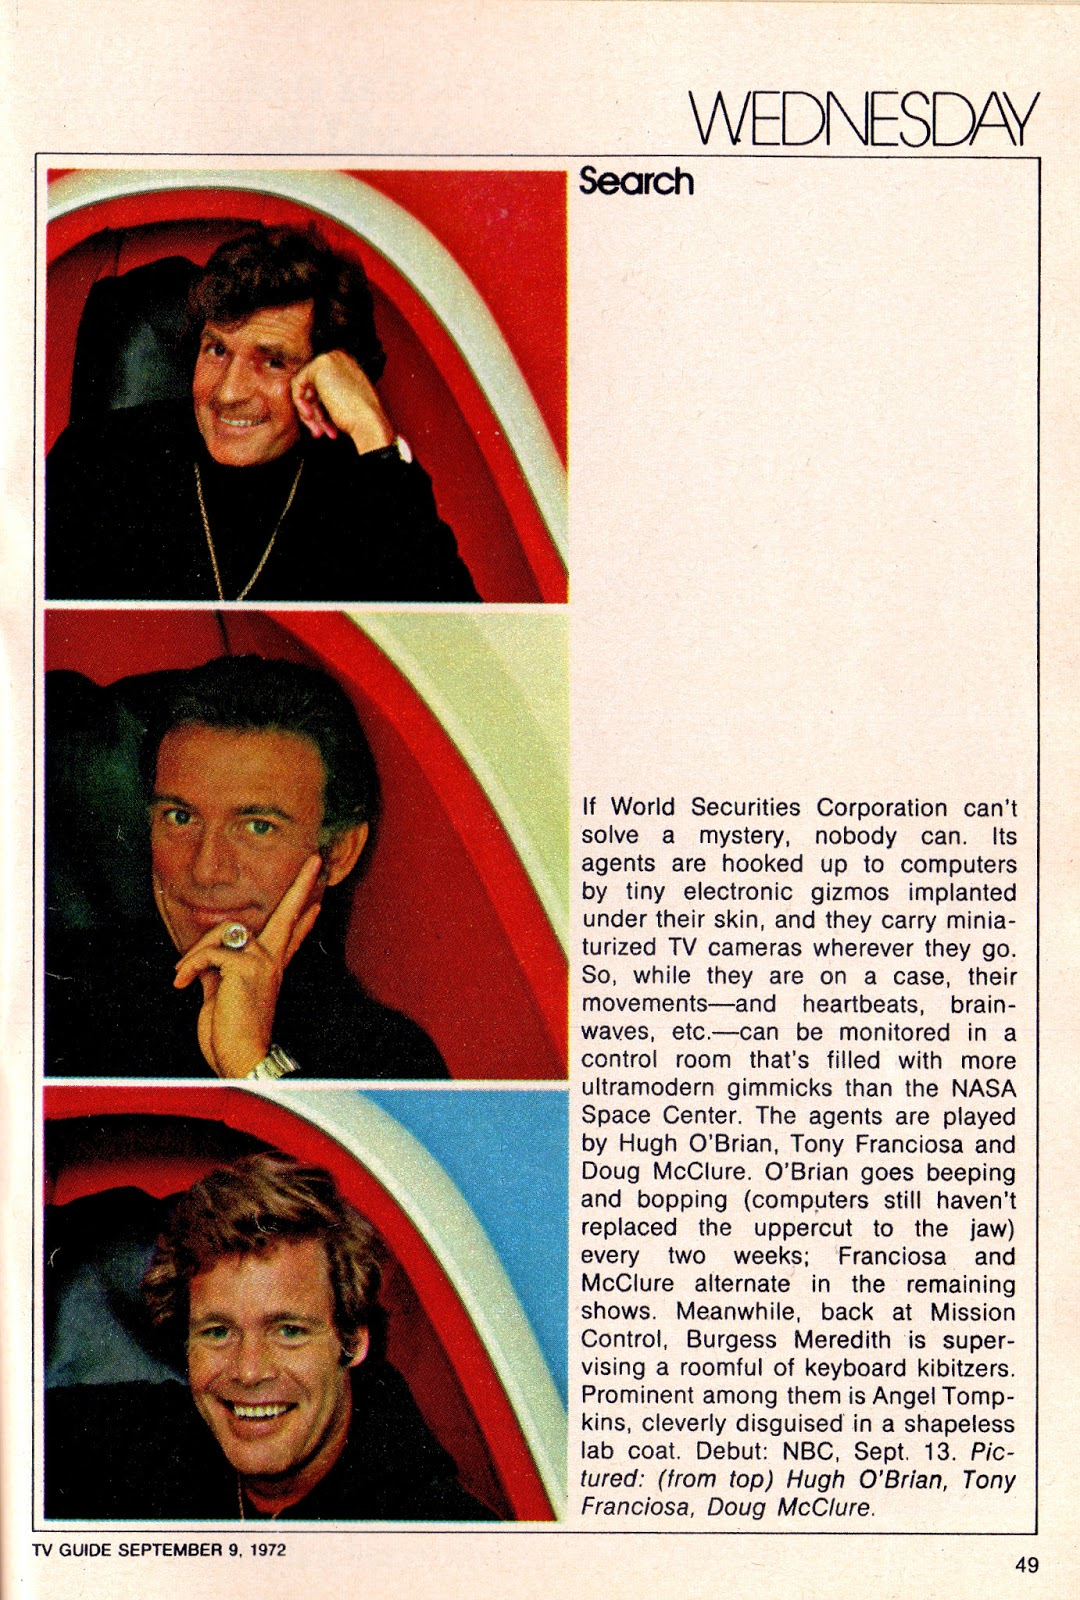 Search in TV Guide, Sept 9, 1972.